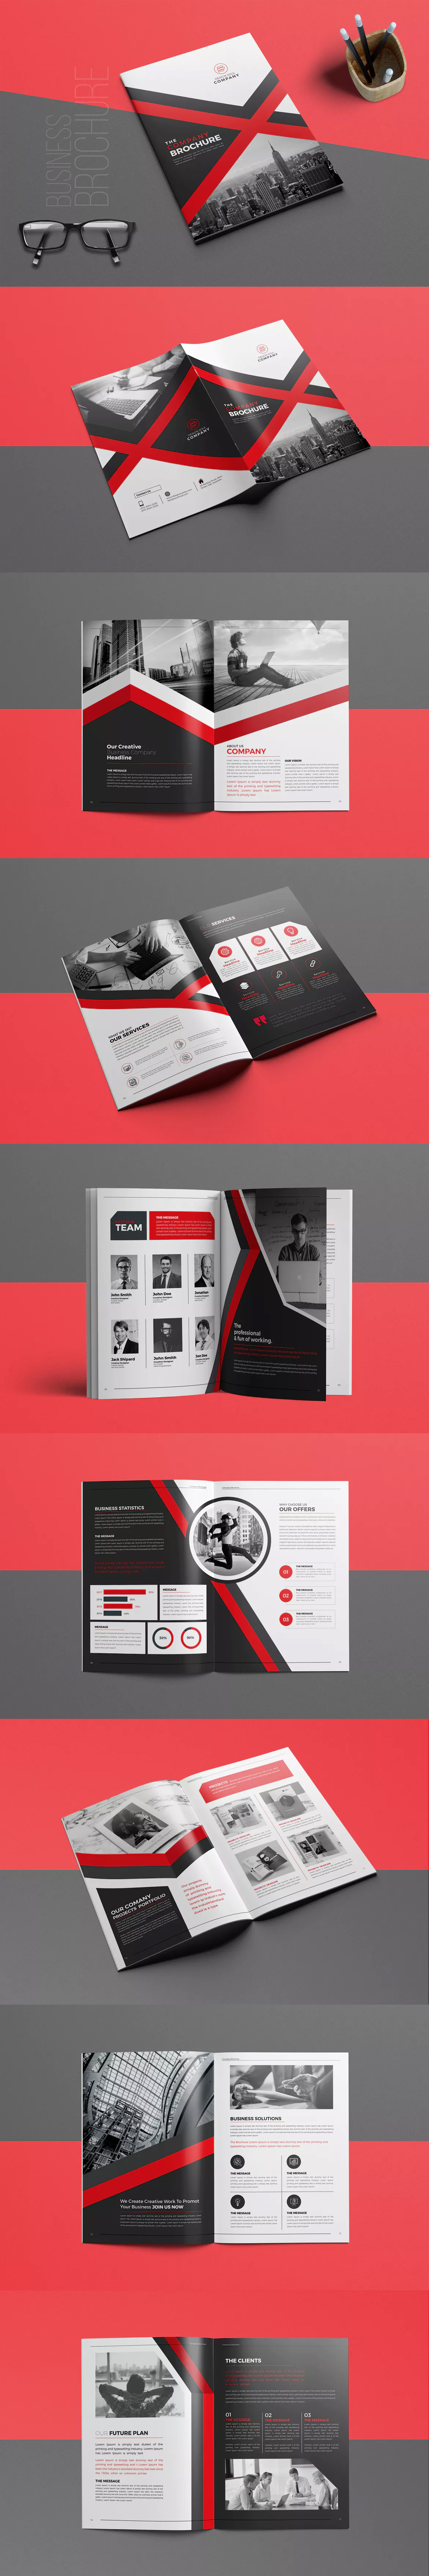 Brochure Template InDesign INDD A4 and US Letter Size | Memorias ...